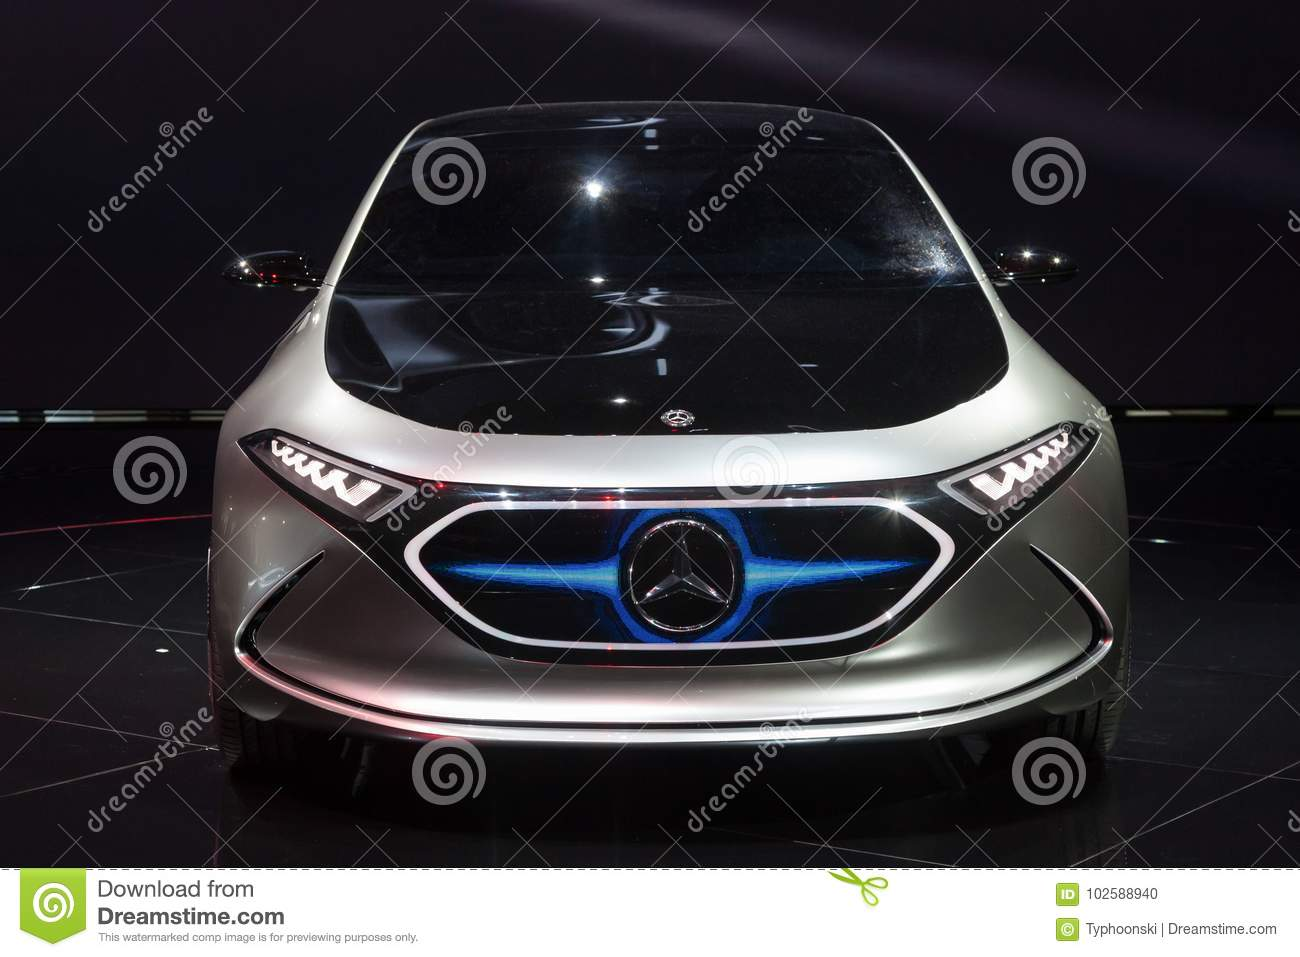 Mercedes Benz EQA Electric Car Concept Editorial Image - Image of ...